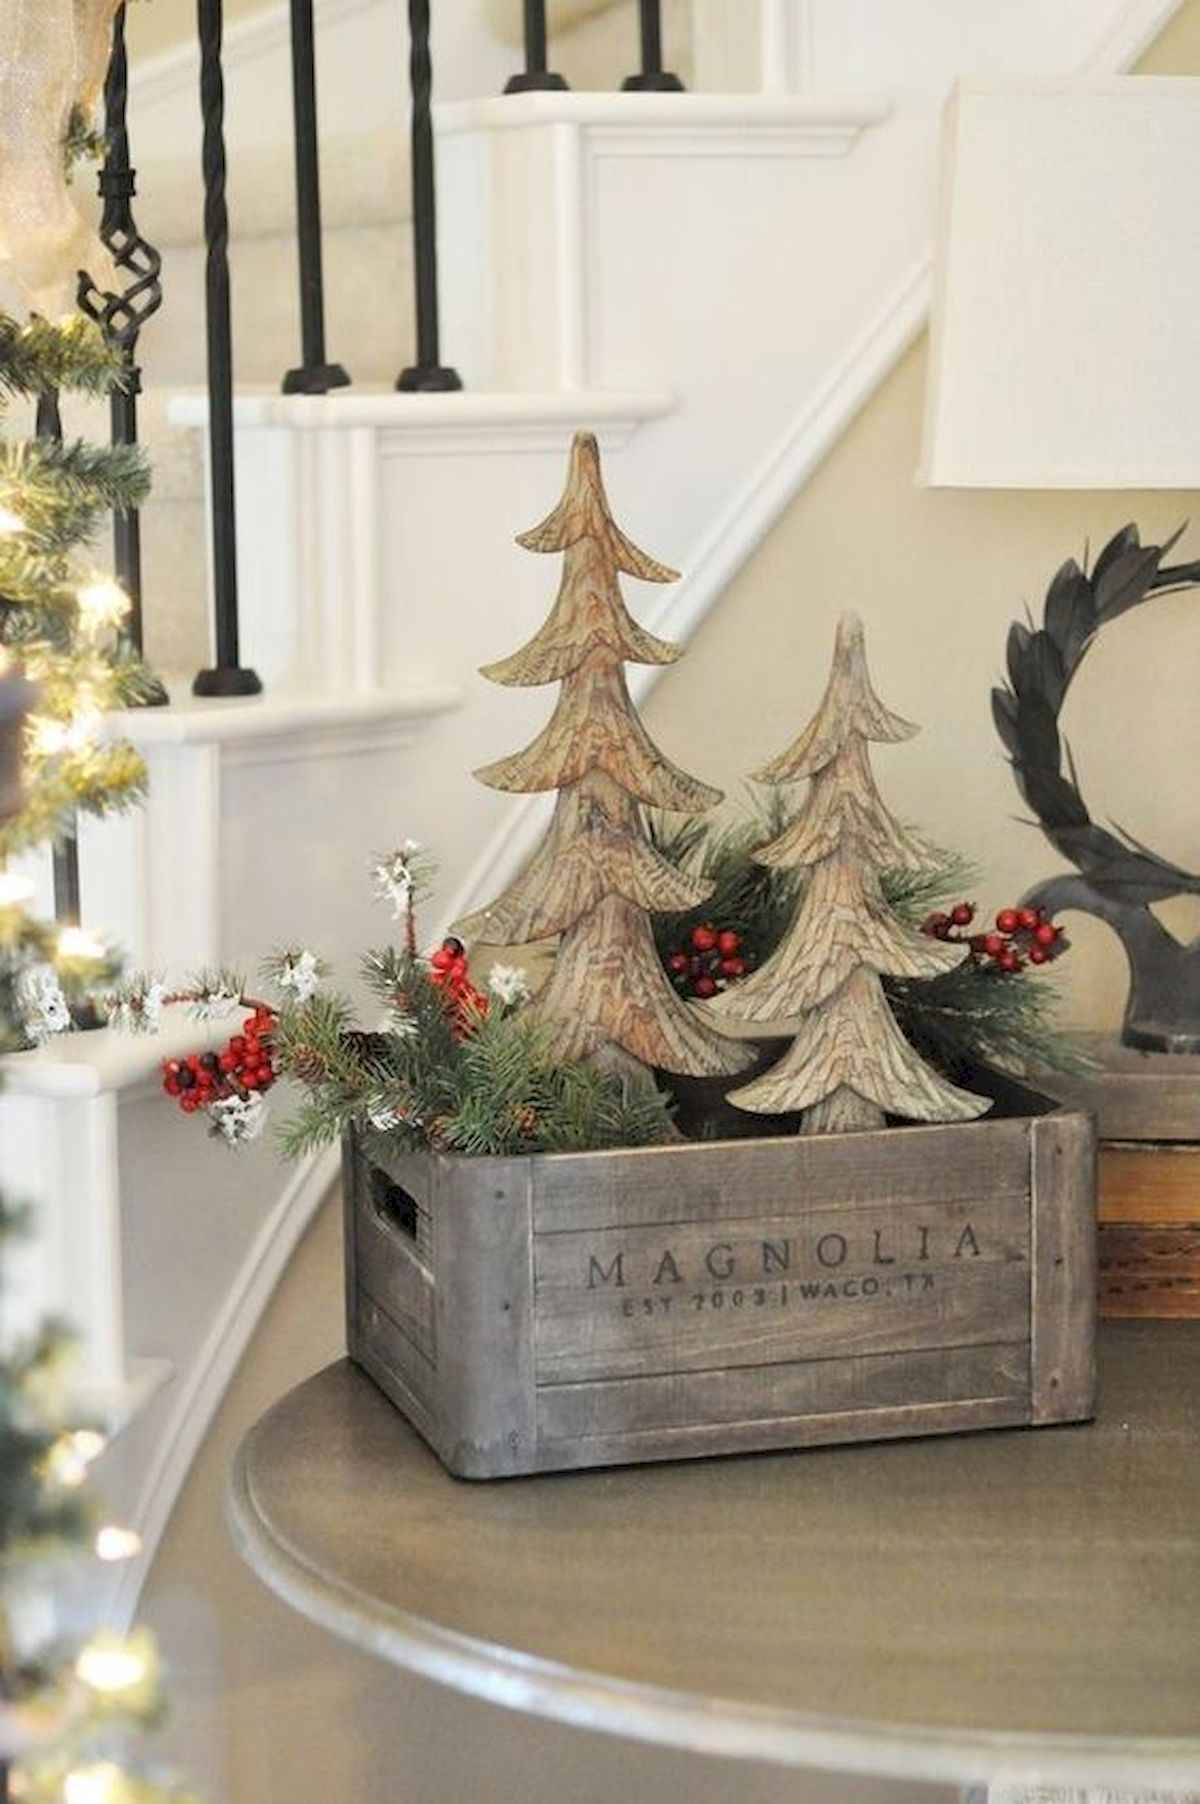 30 rustic and vintage christmas tree ideas decorations (2)